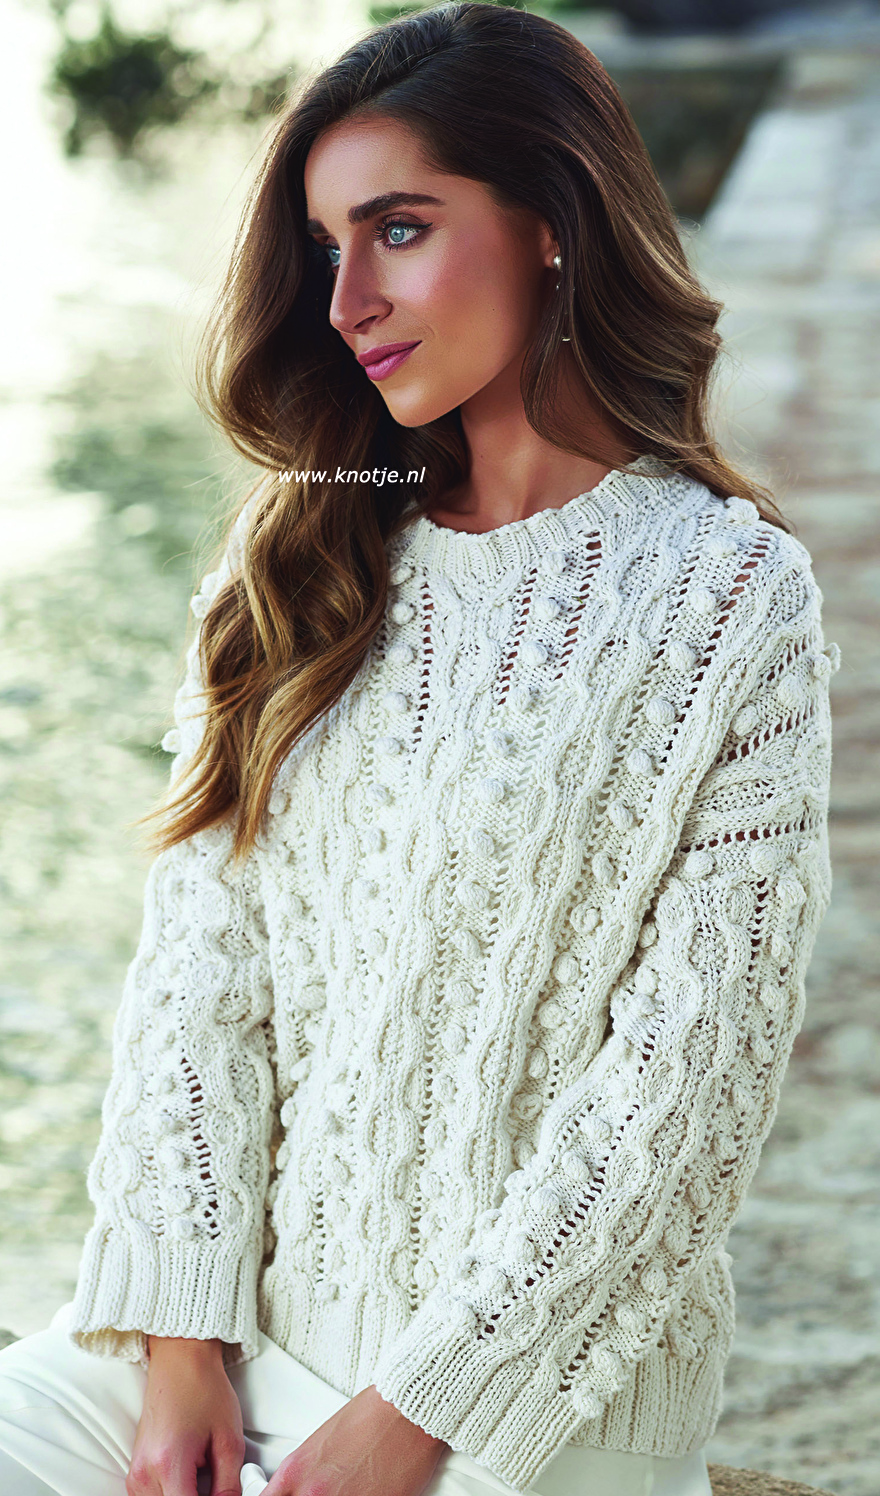 009 cable bobble sweater 1kopie.jpg